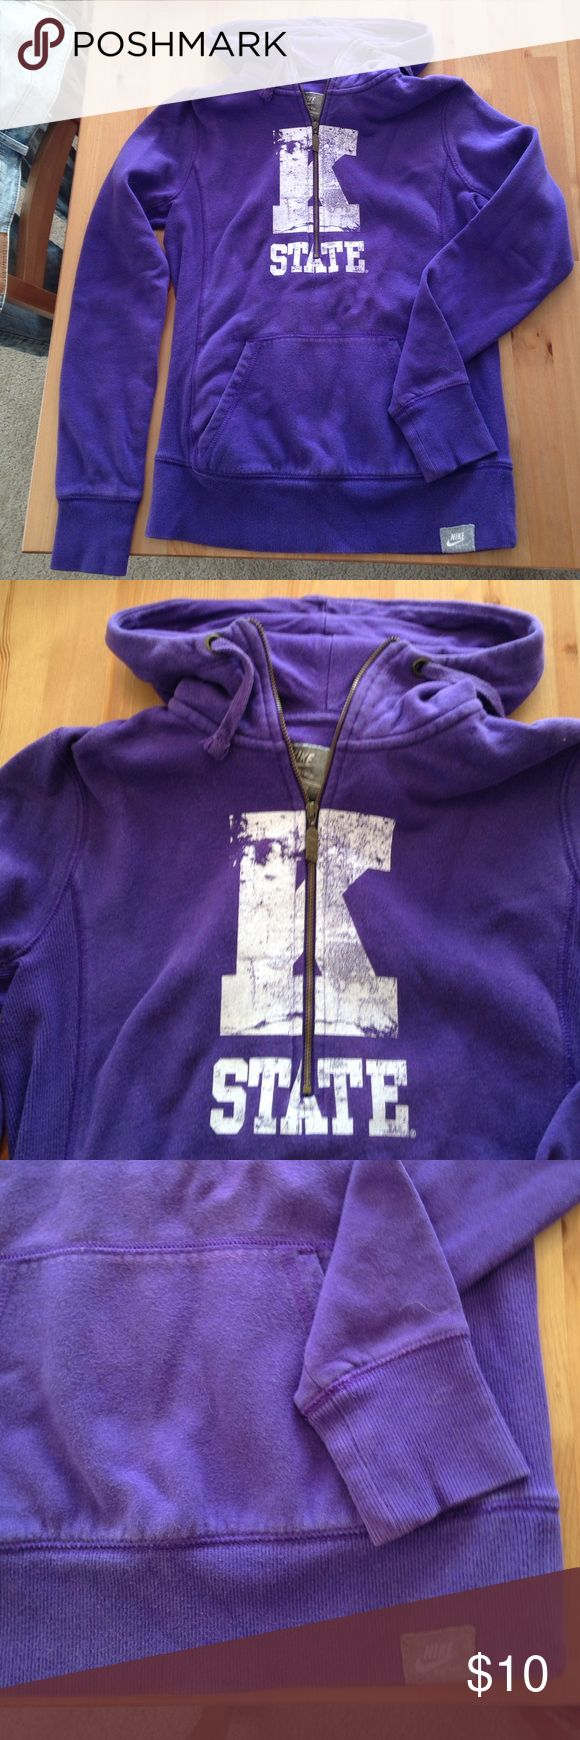 Kansas state university ksu Nike sweatshirt 3/4 quarter zip sweatshirt with hood. Kstate printed on front with vintage willie on the hood. Very loved but now too small. Fading in fabric. Nike Tops Sweatshirts & Hoodies